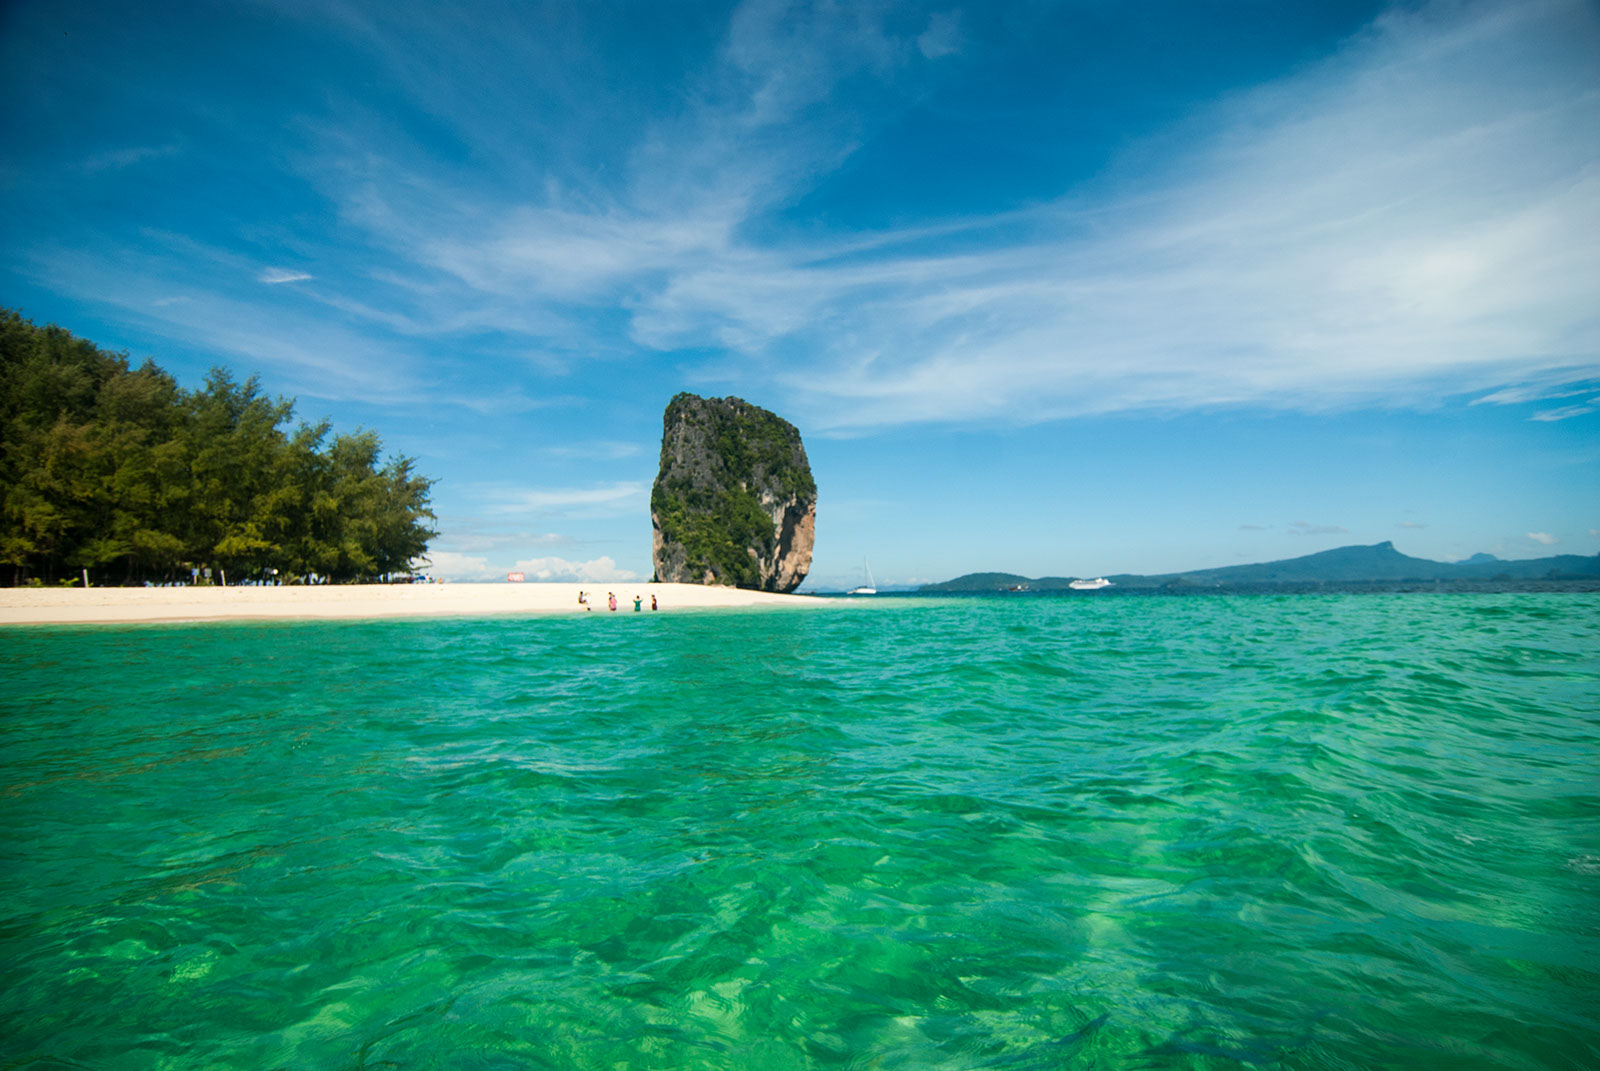 Krabi 4 Island Tour By Longtail & Speedboat